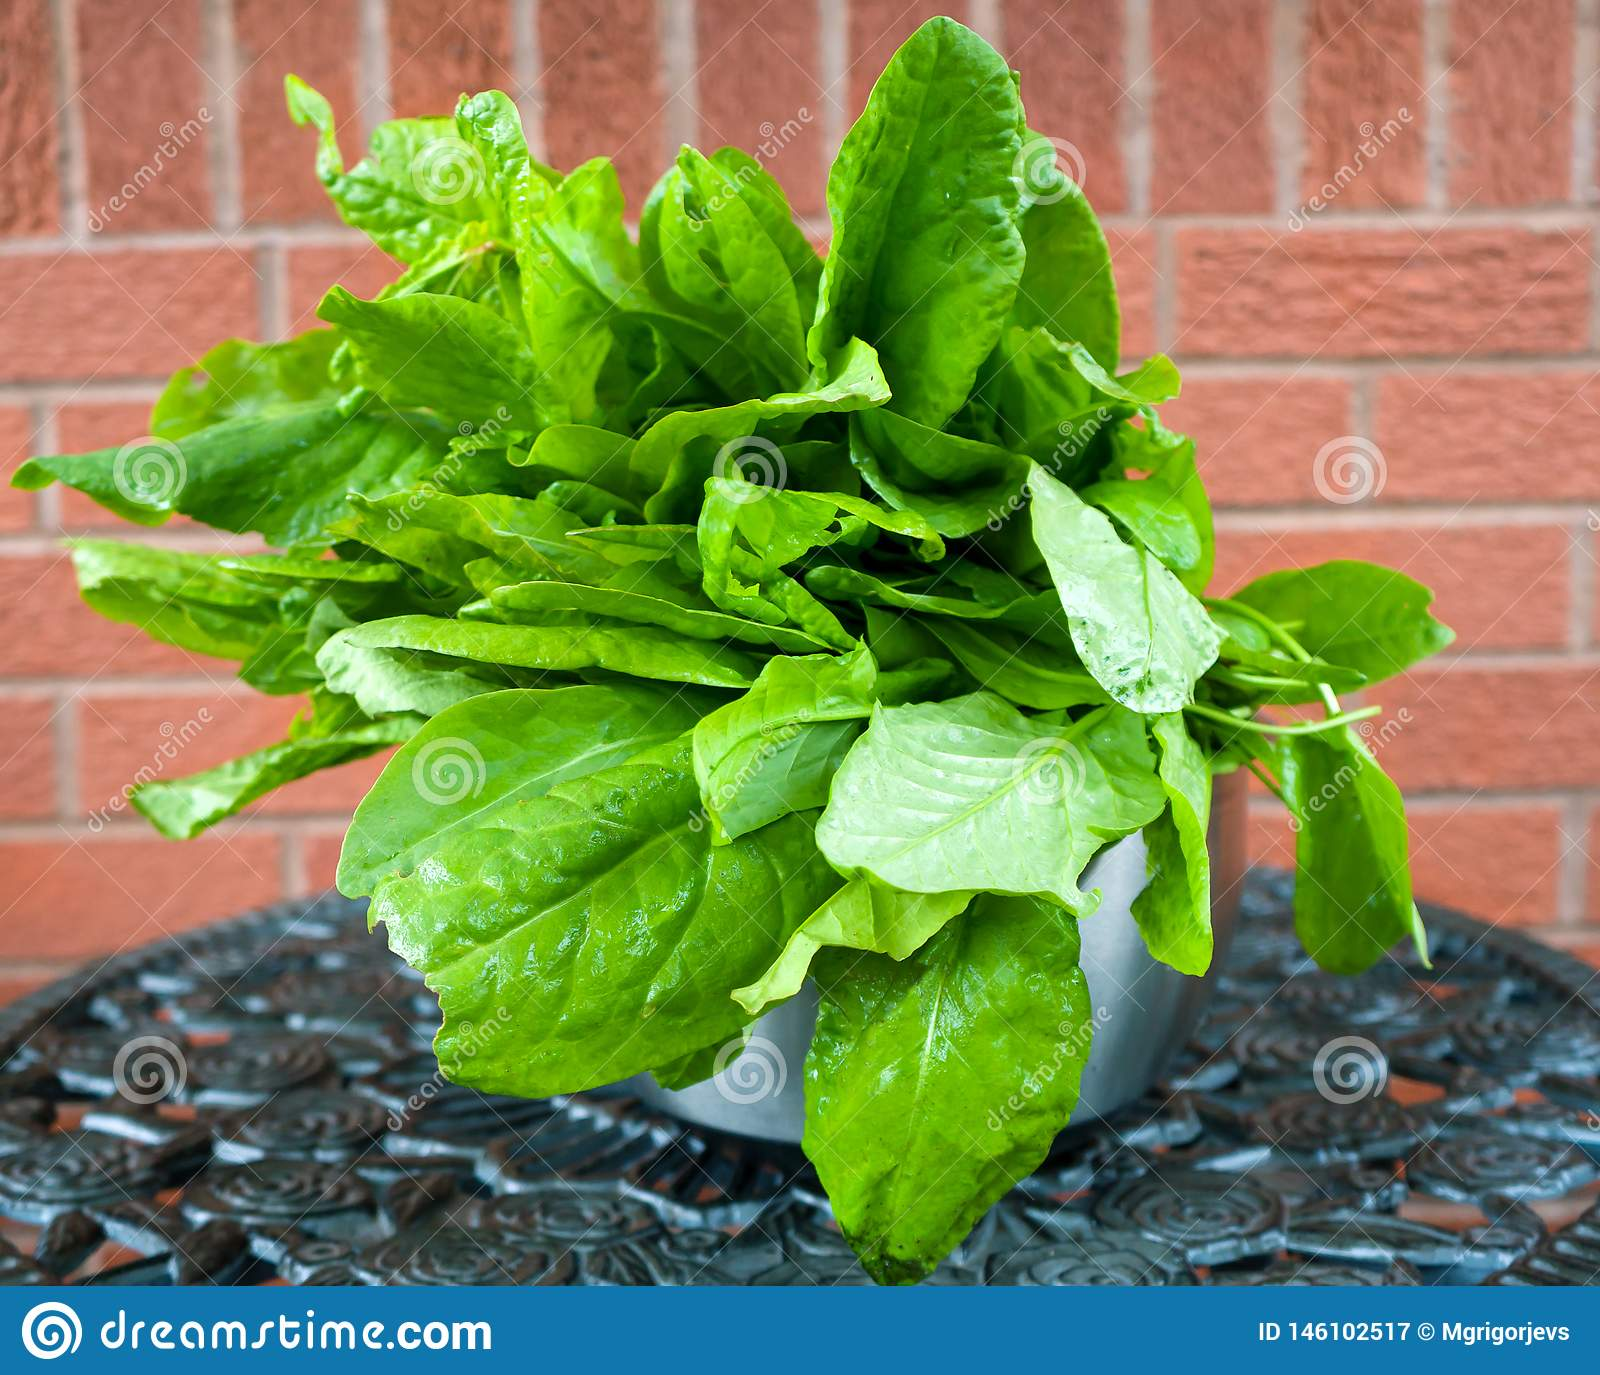 Freshly picked green sorrel leaves with water drops in a metal bowl